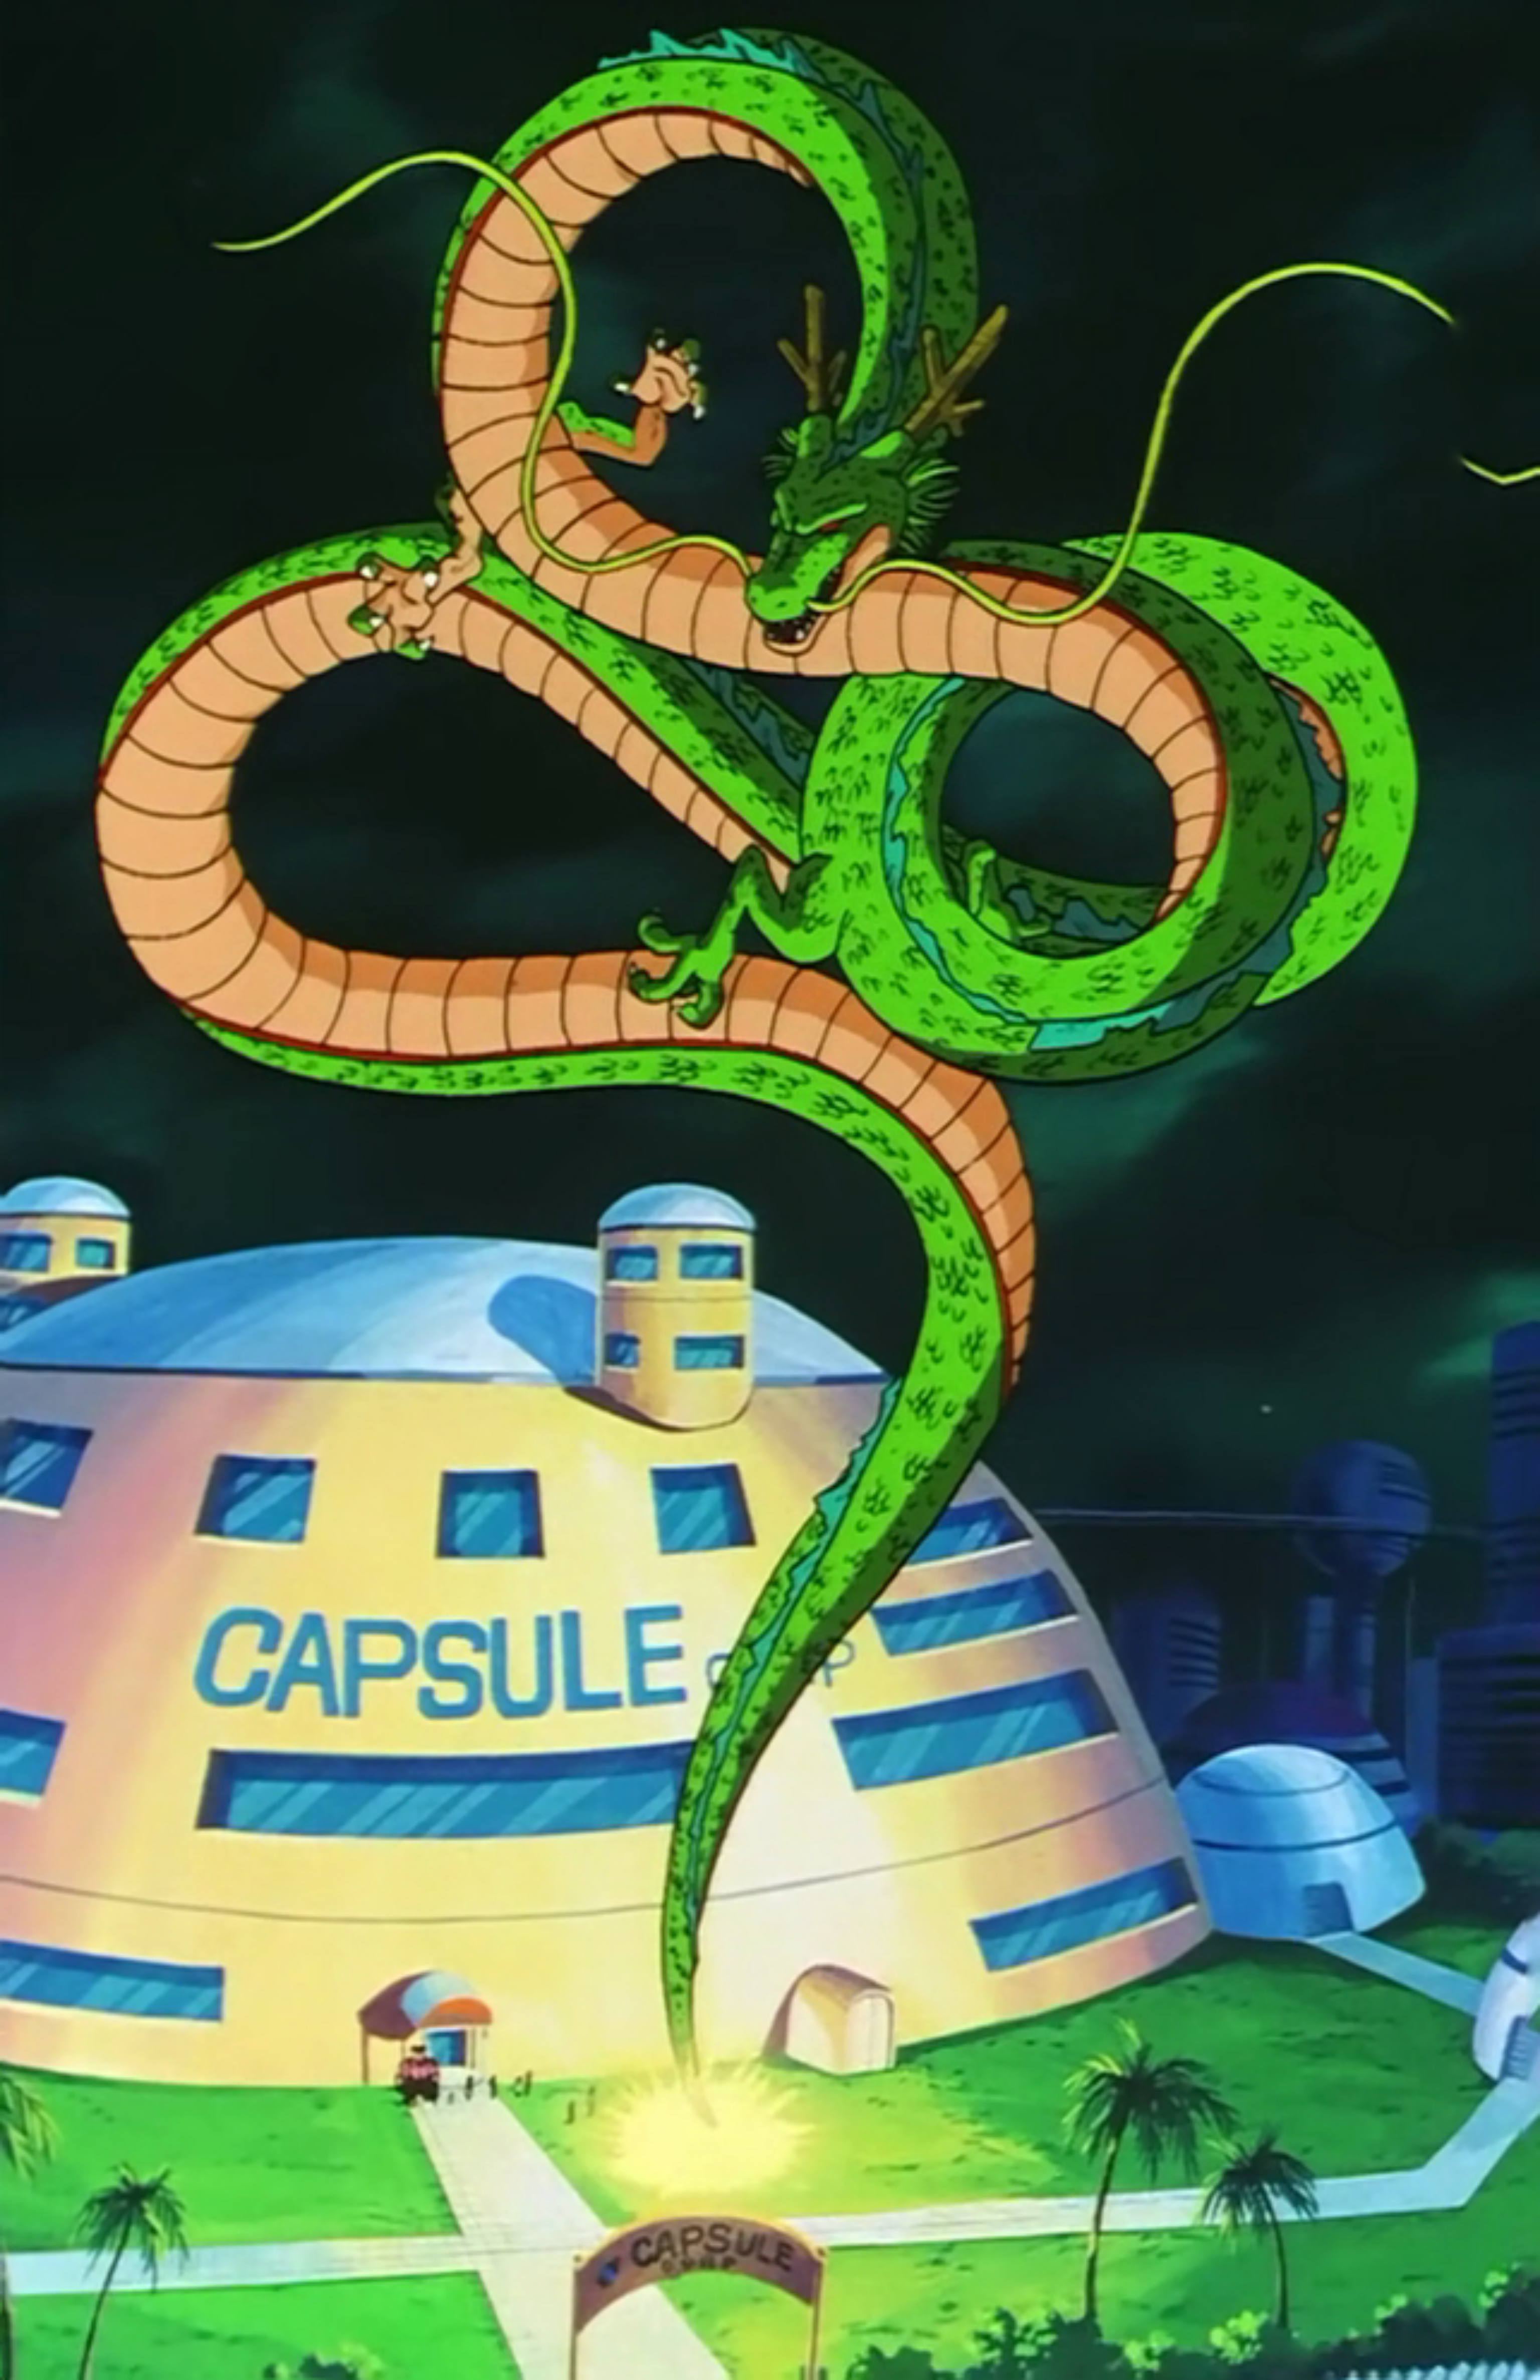 Shenron DBZ appearing to grant a wish.